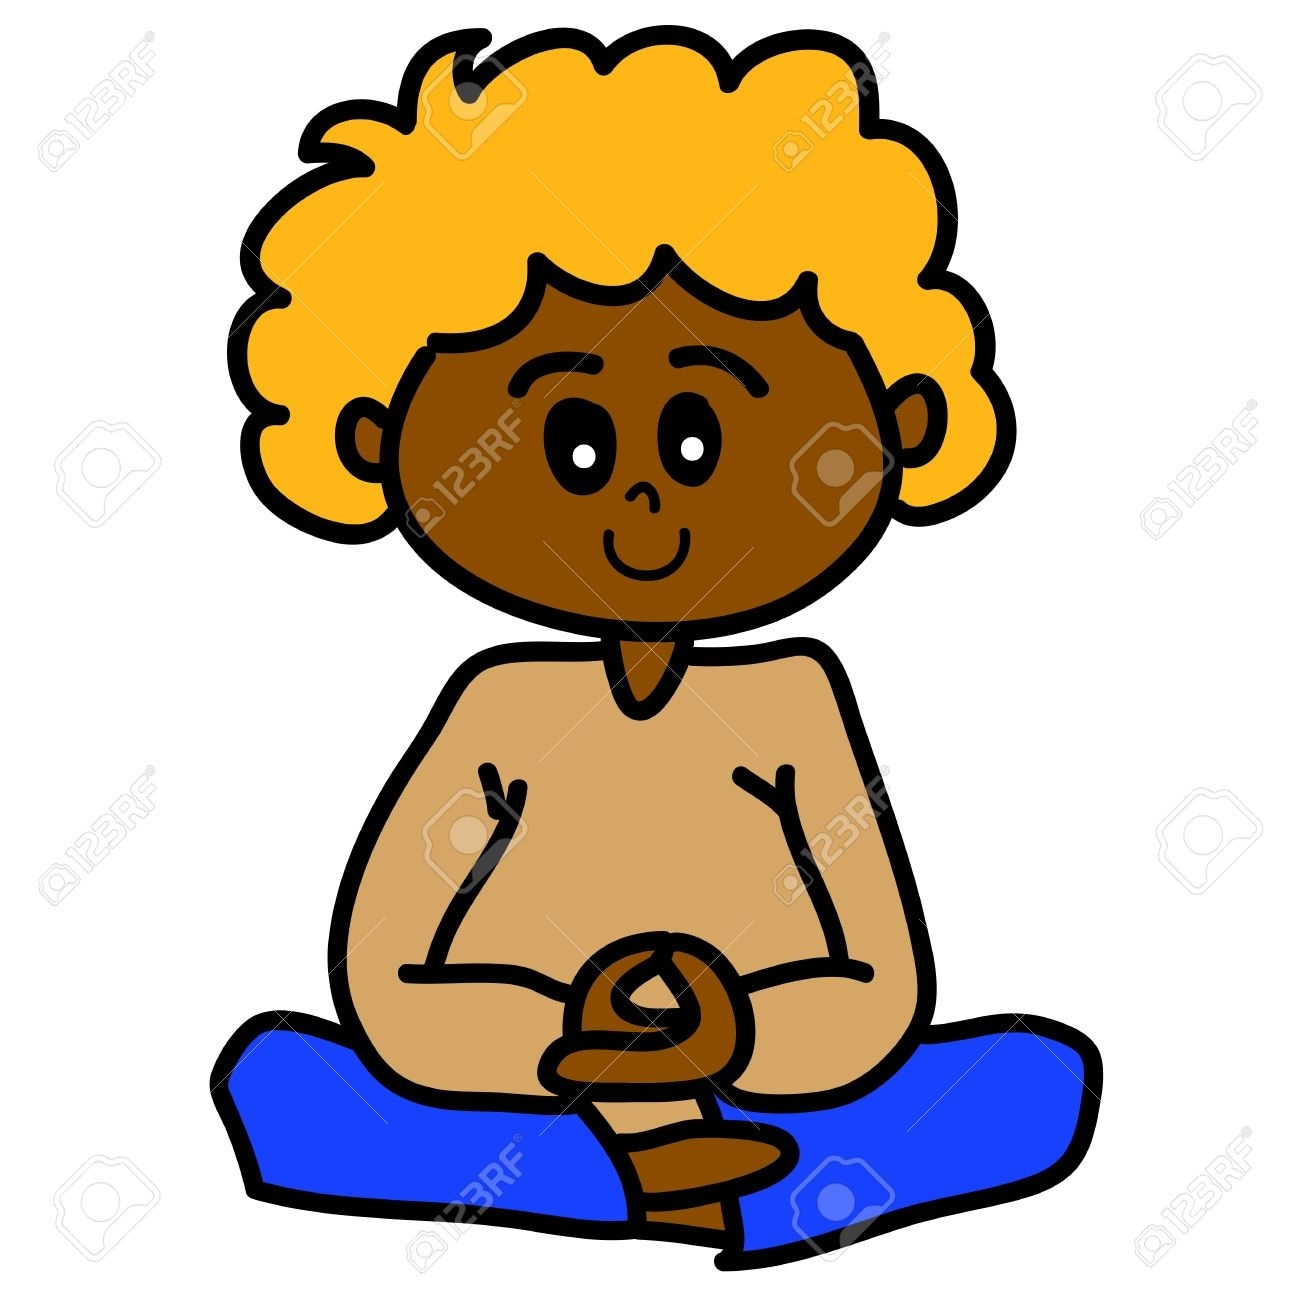 Boy writings and essays. Calm clipart calm body